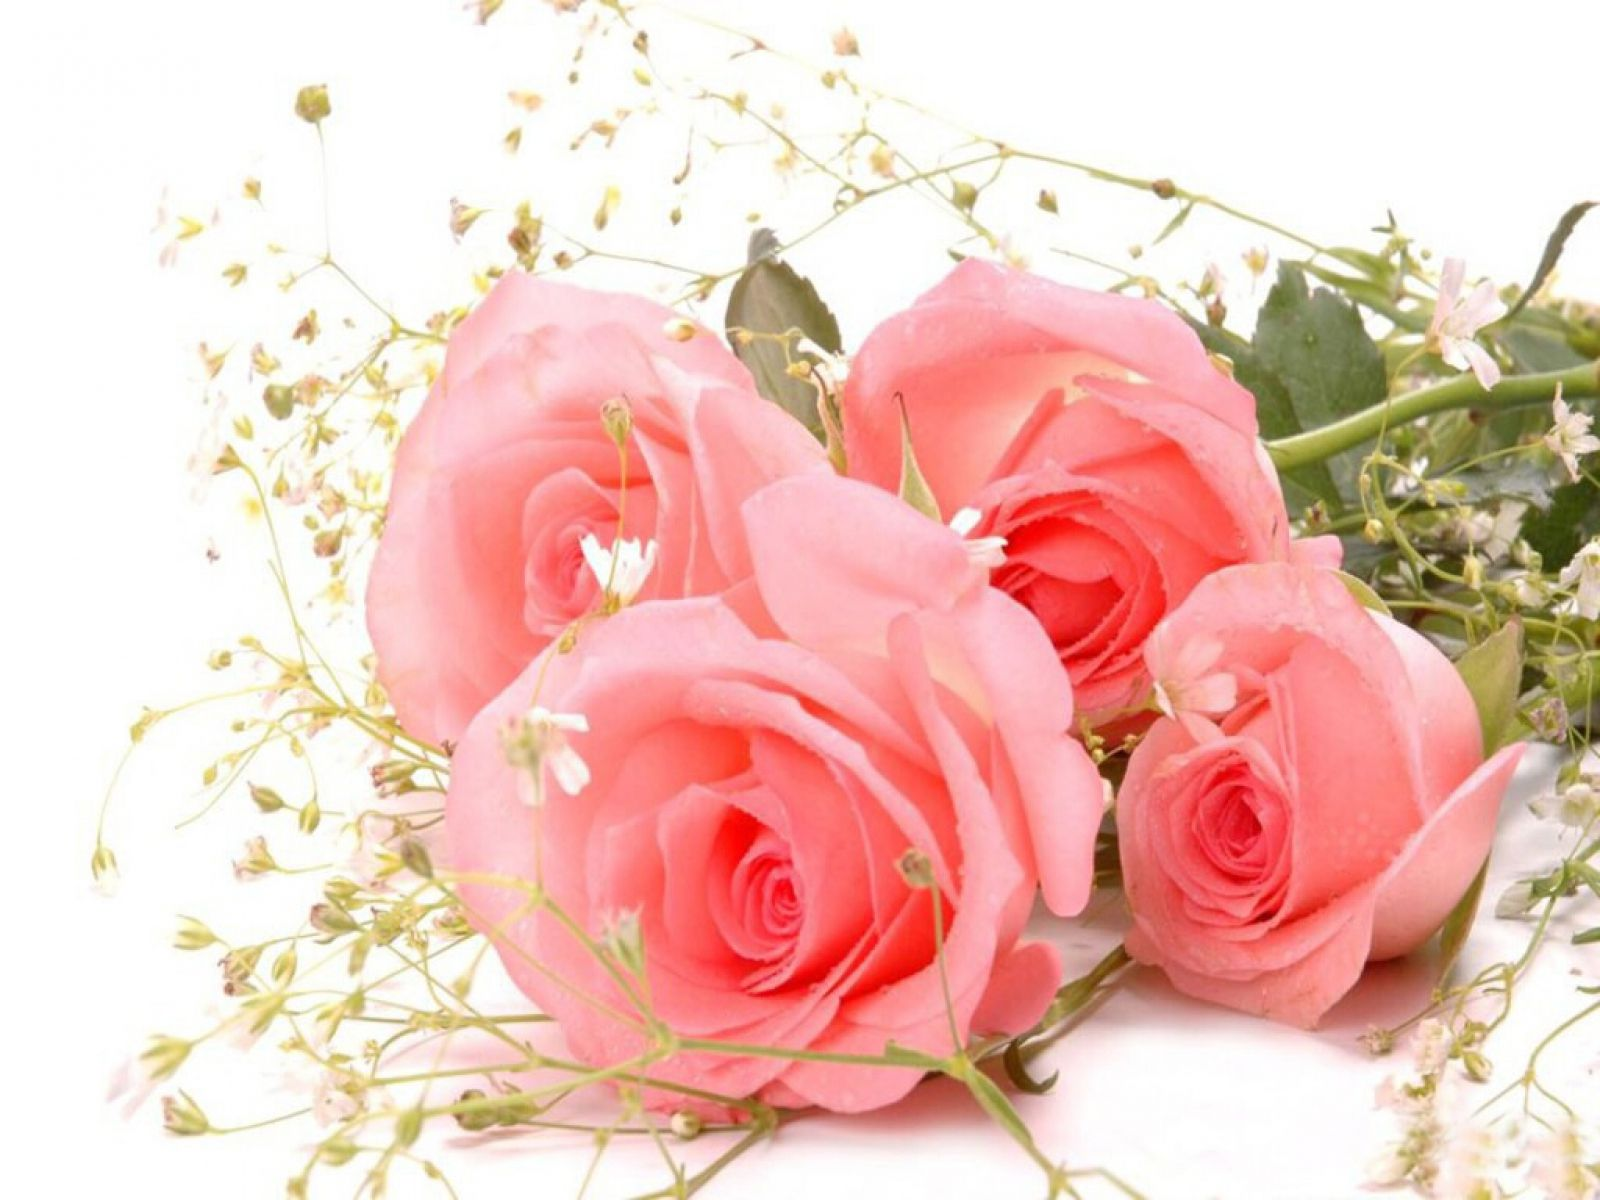 Pink roses spring has sprung pinterest desktop images and pink roses biocorpaavc Images